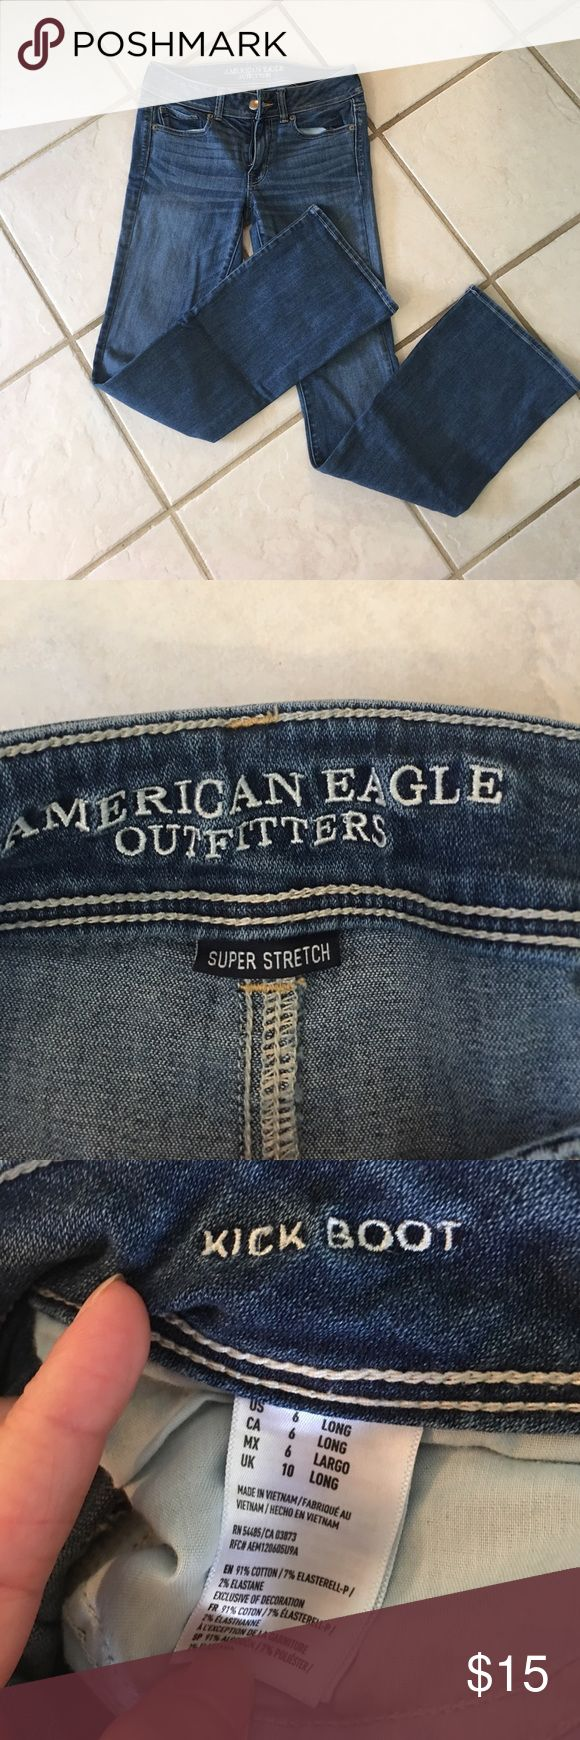 American eagle superstretch kick boot jeans American Eagle outfitters superstretch size 6 long kick boot jeans. Only worn A few times. Comes from a smoke free home. 20% discount when bundling items. No trading American Eagle Outfitters Jeans Boot Cut